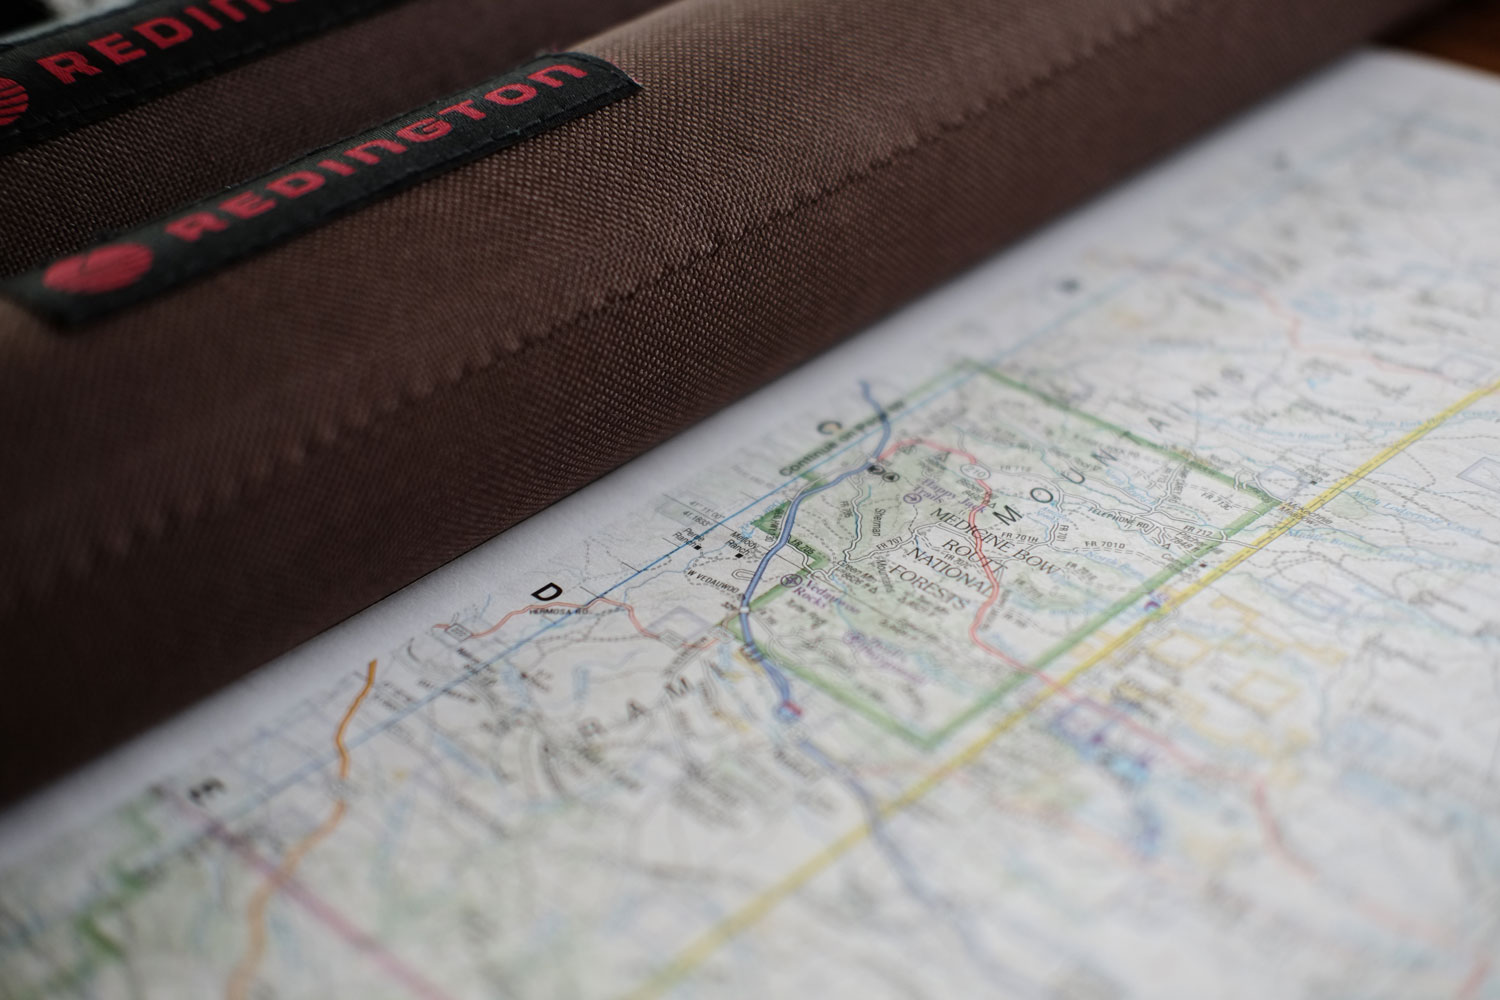 Planning the trip. Redington Butterstick and map of Wyoming